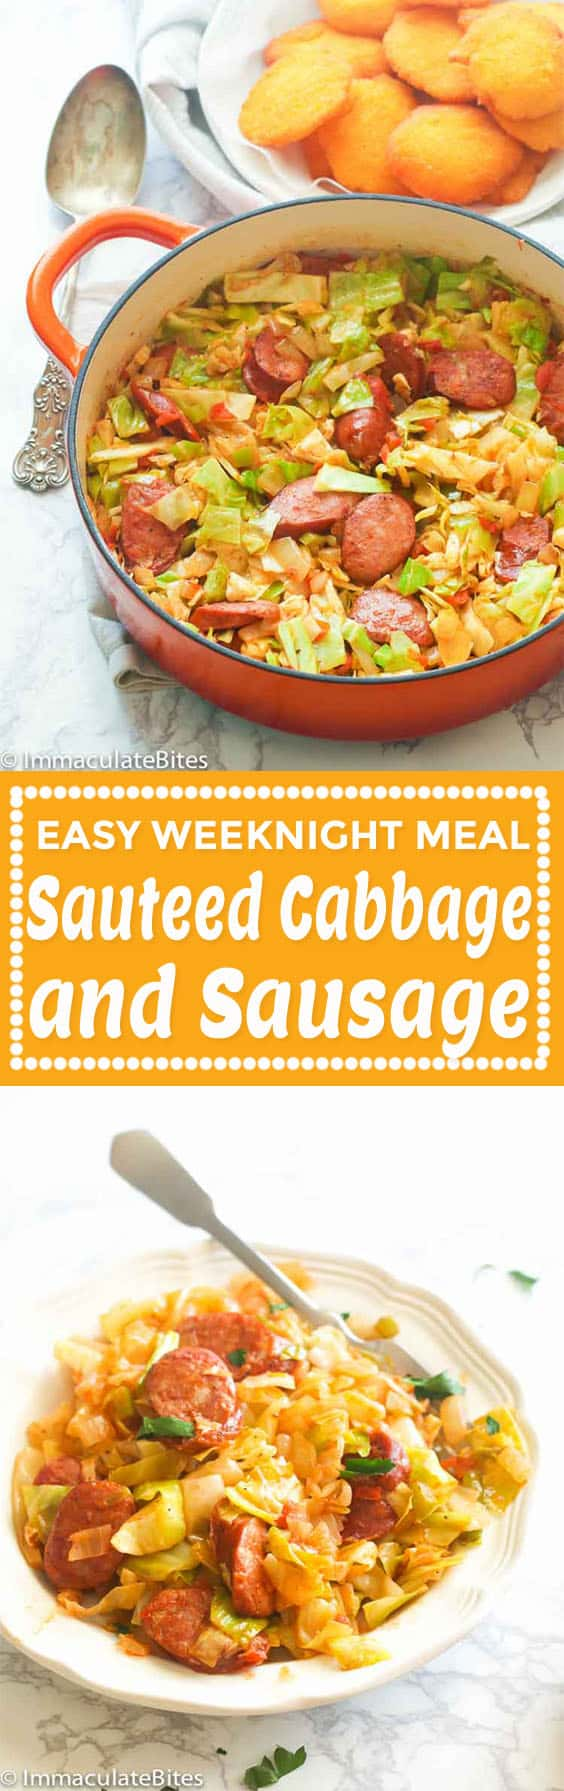 Sauteed Cabbage and Sausage.